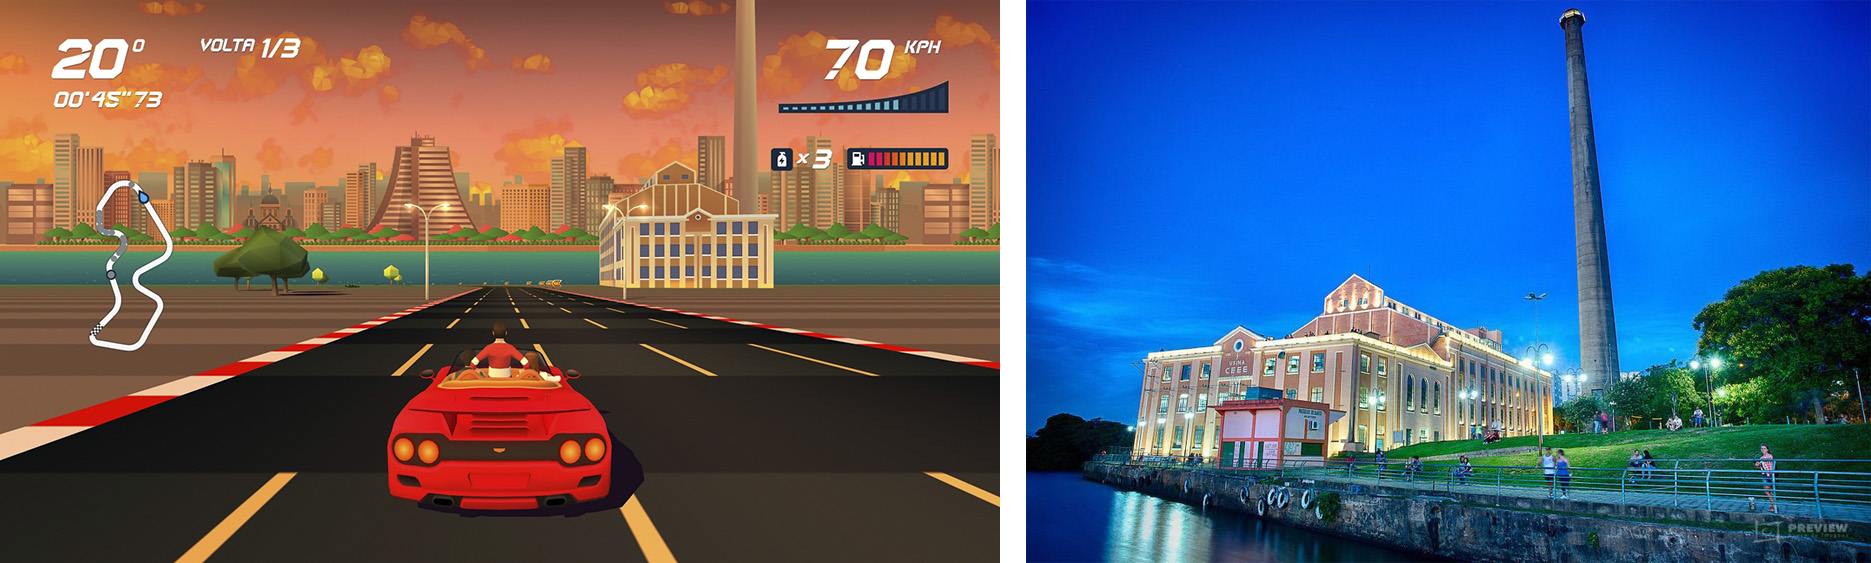 Horizon Chase Turbo – Devs Hometown - Usina do Gasômetro